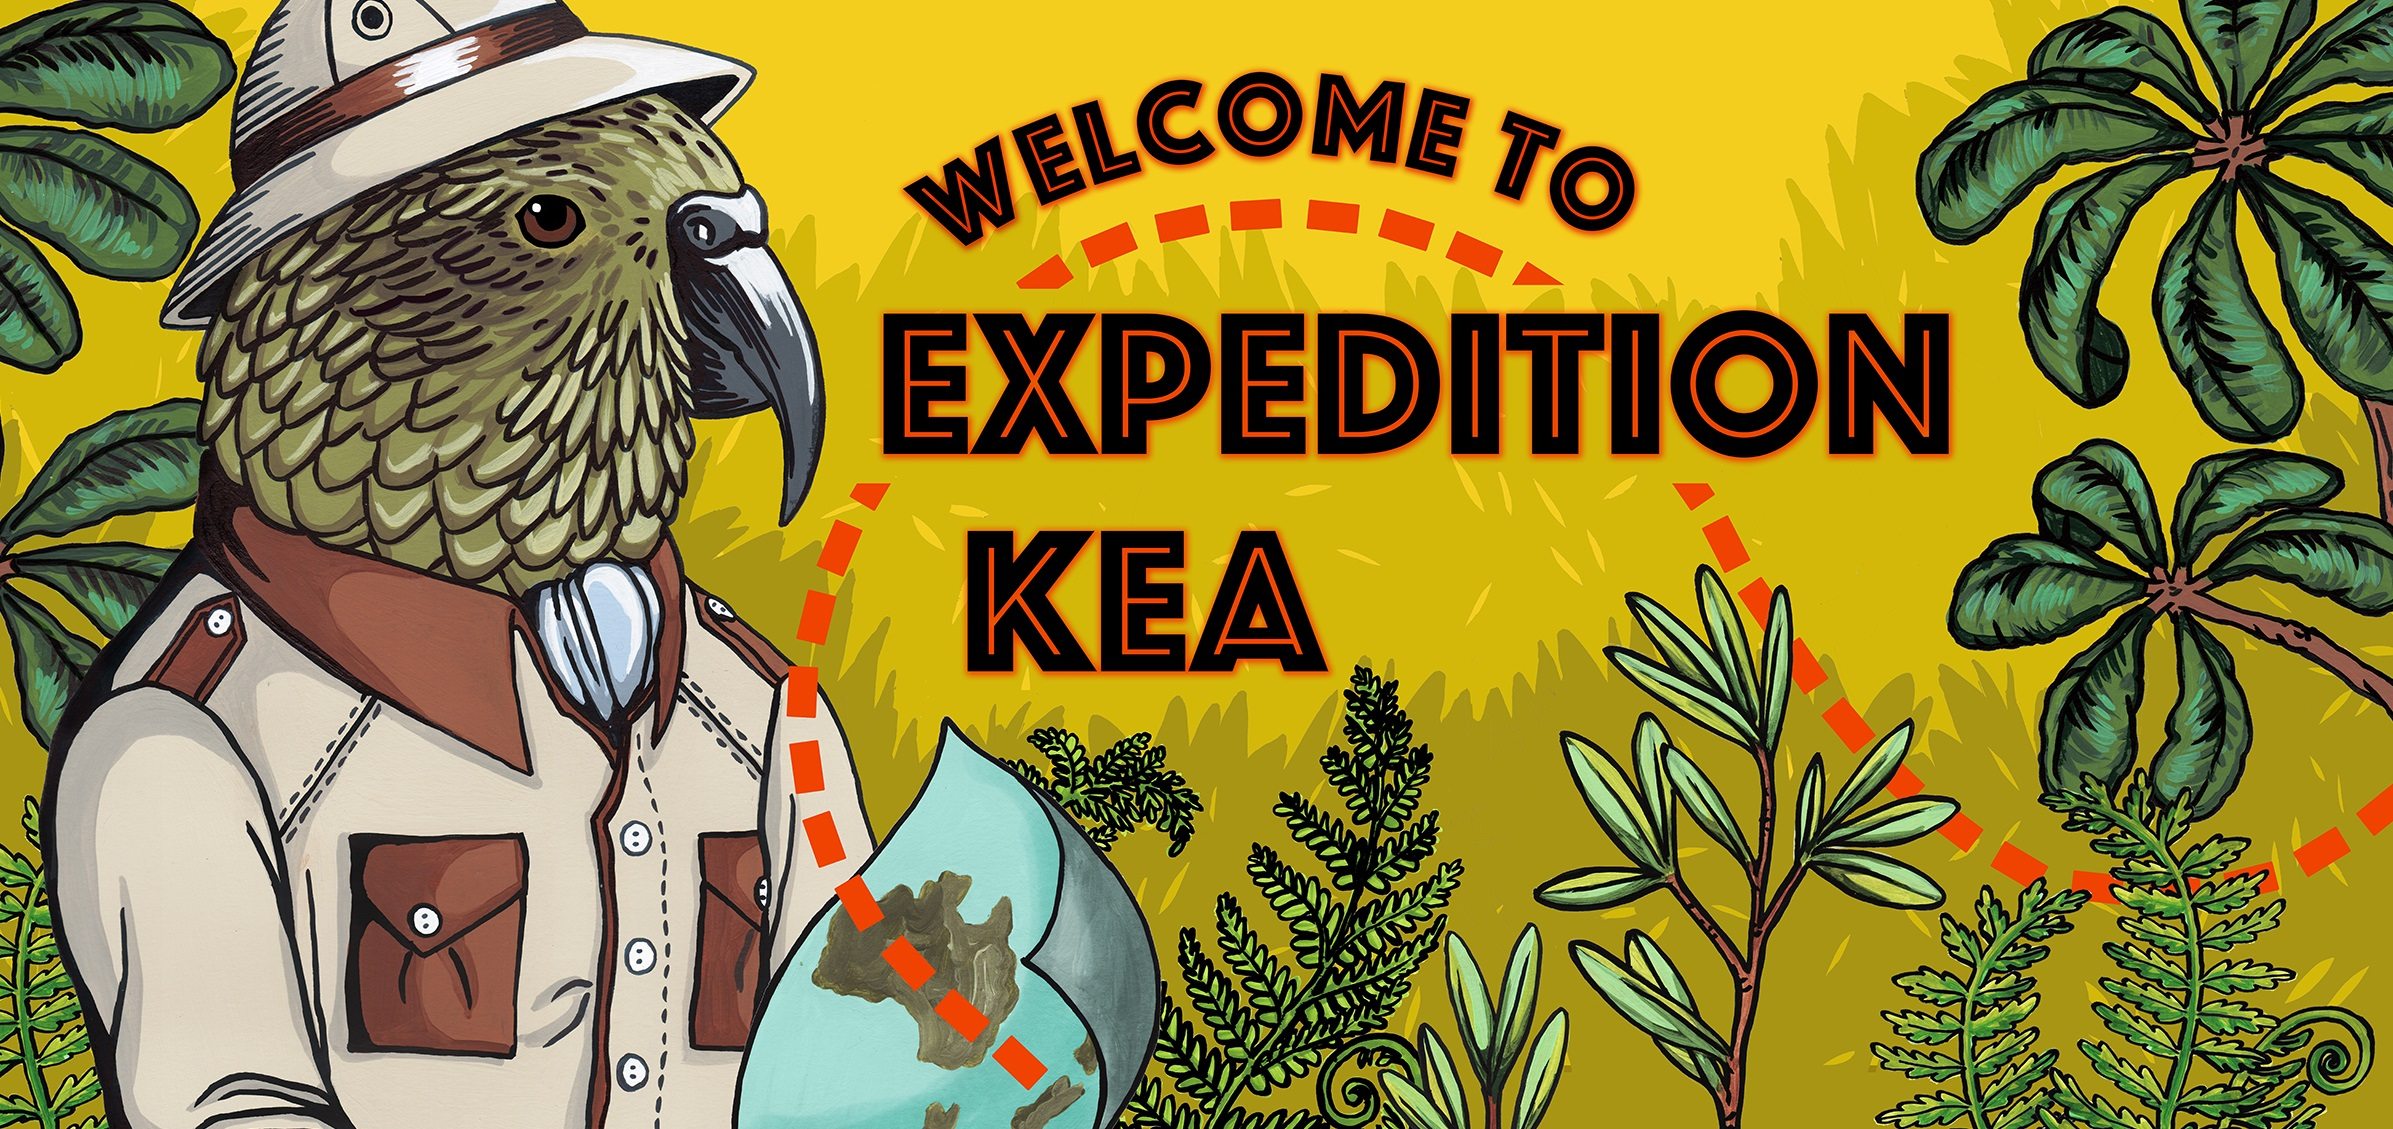 Expedition Kea Sign